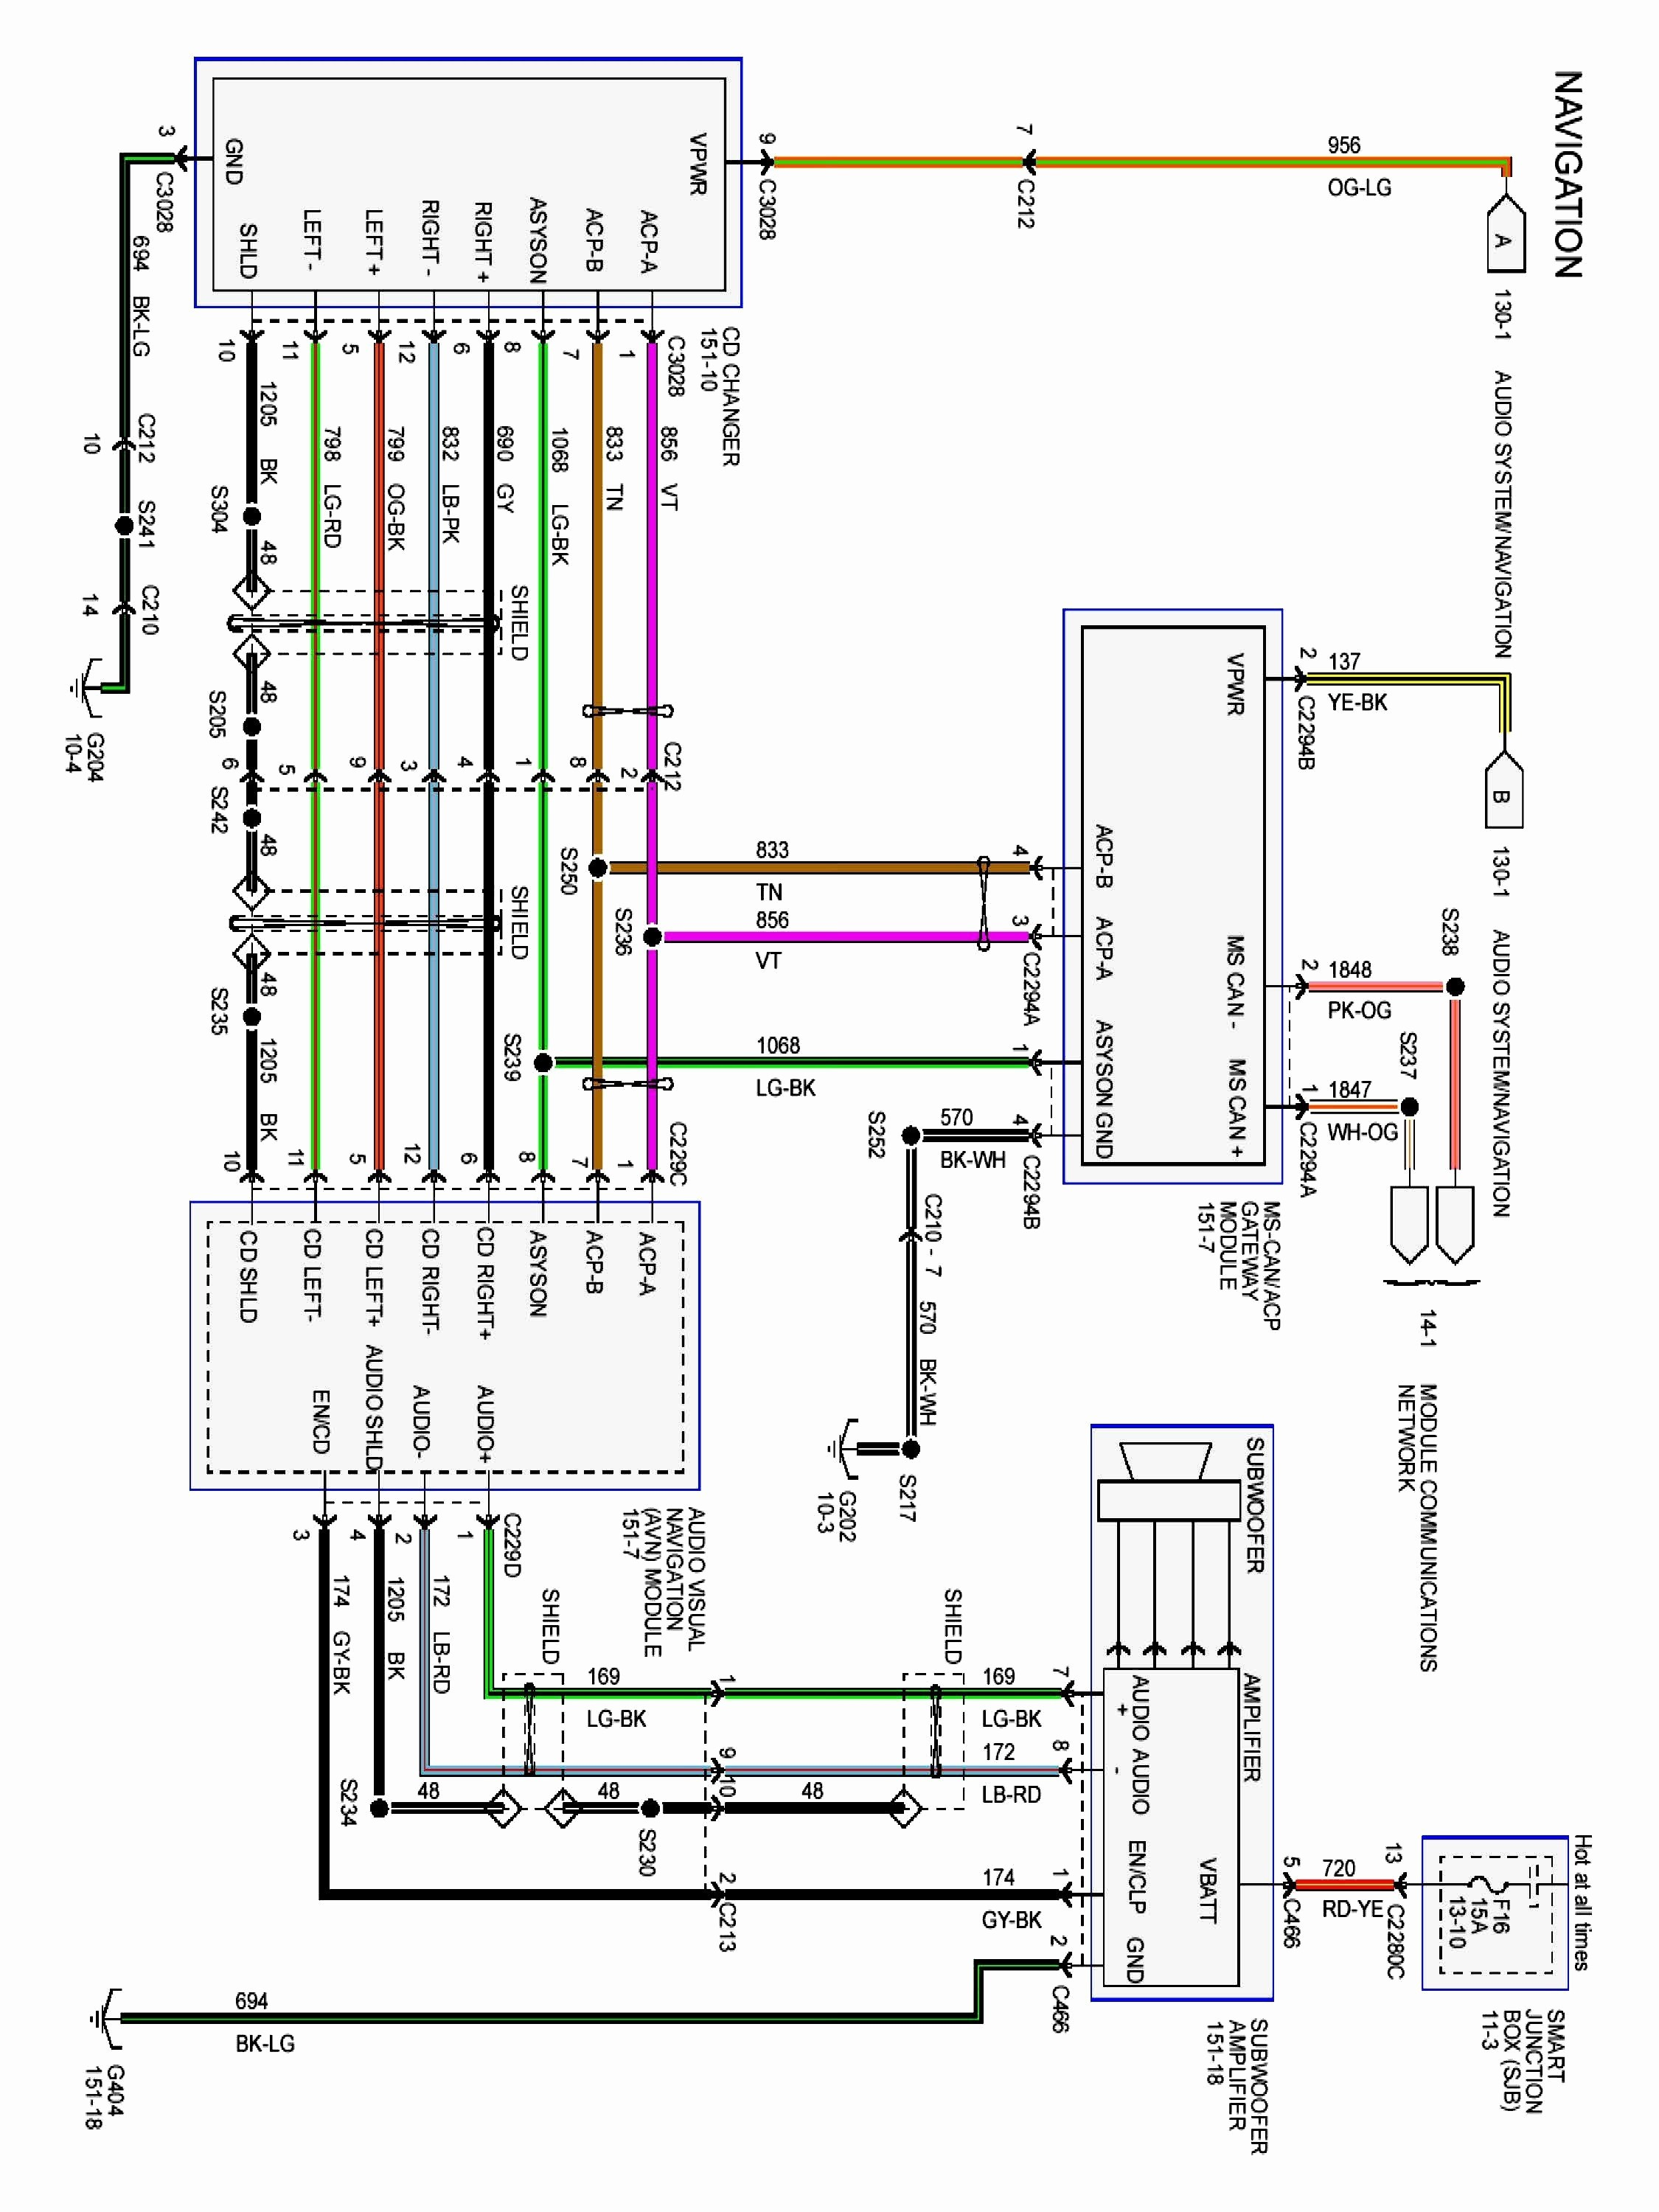 Ford Taurus Parts Diagram 2003 ford Taurus Relay Diagram Another Blog About Wiring Diagram • Of Ford Taurus Parts Diagram